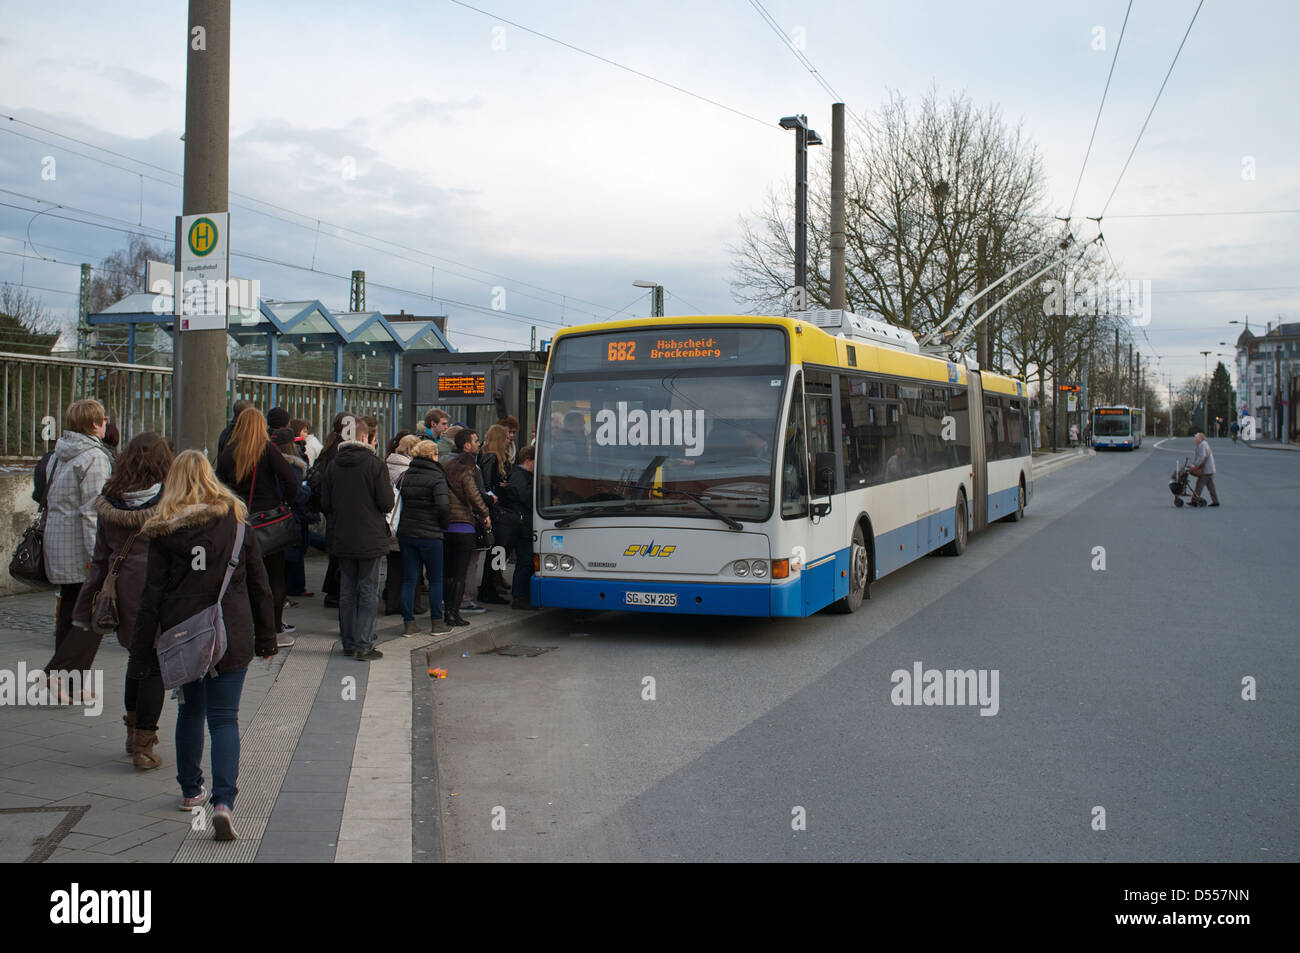 bus stop german germany stockfotos bus stop german germany bilder alamy. Black Bedroom Furniture Sets. Home Design Ideas